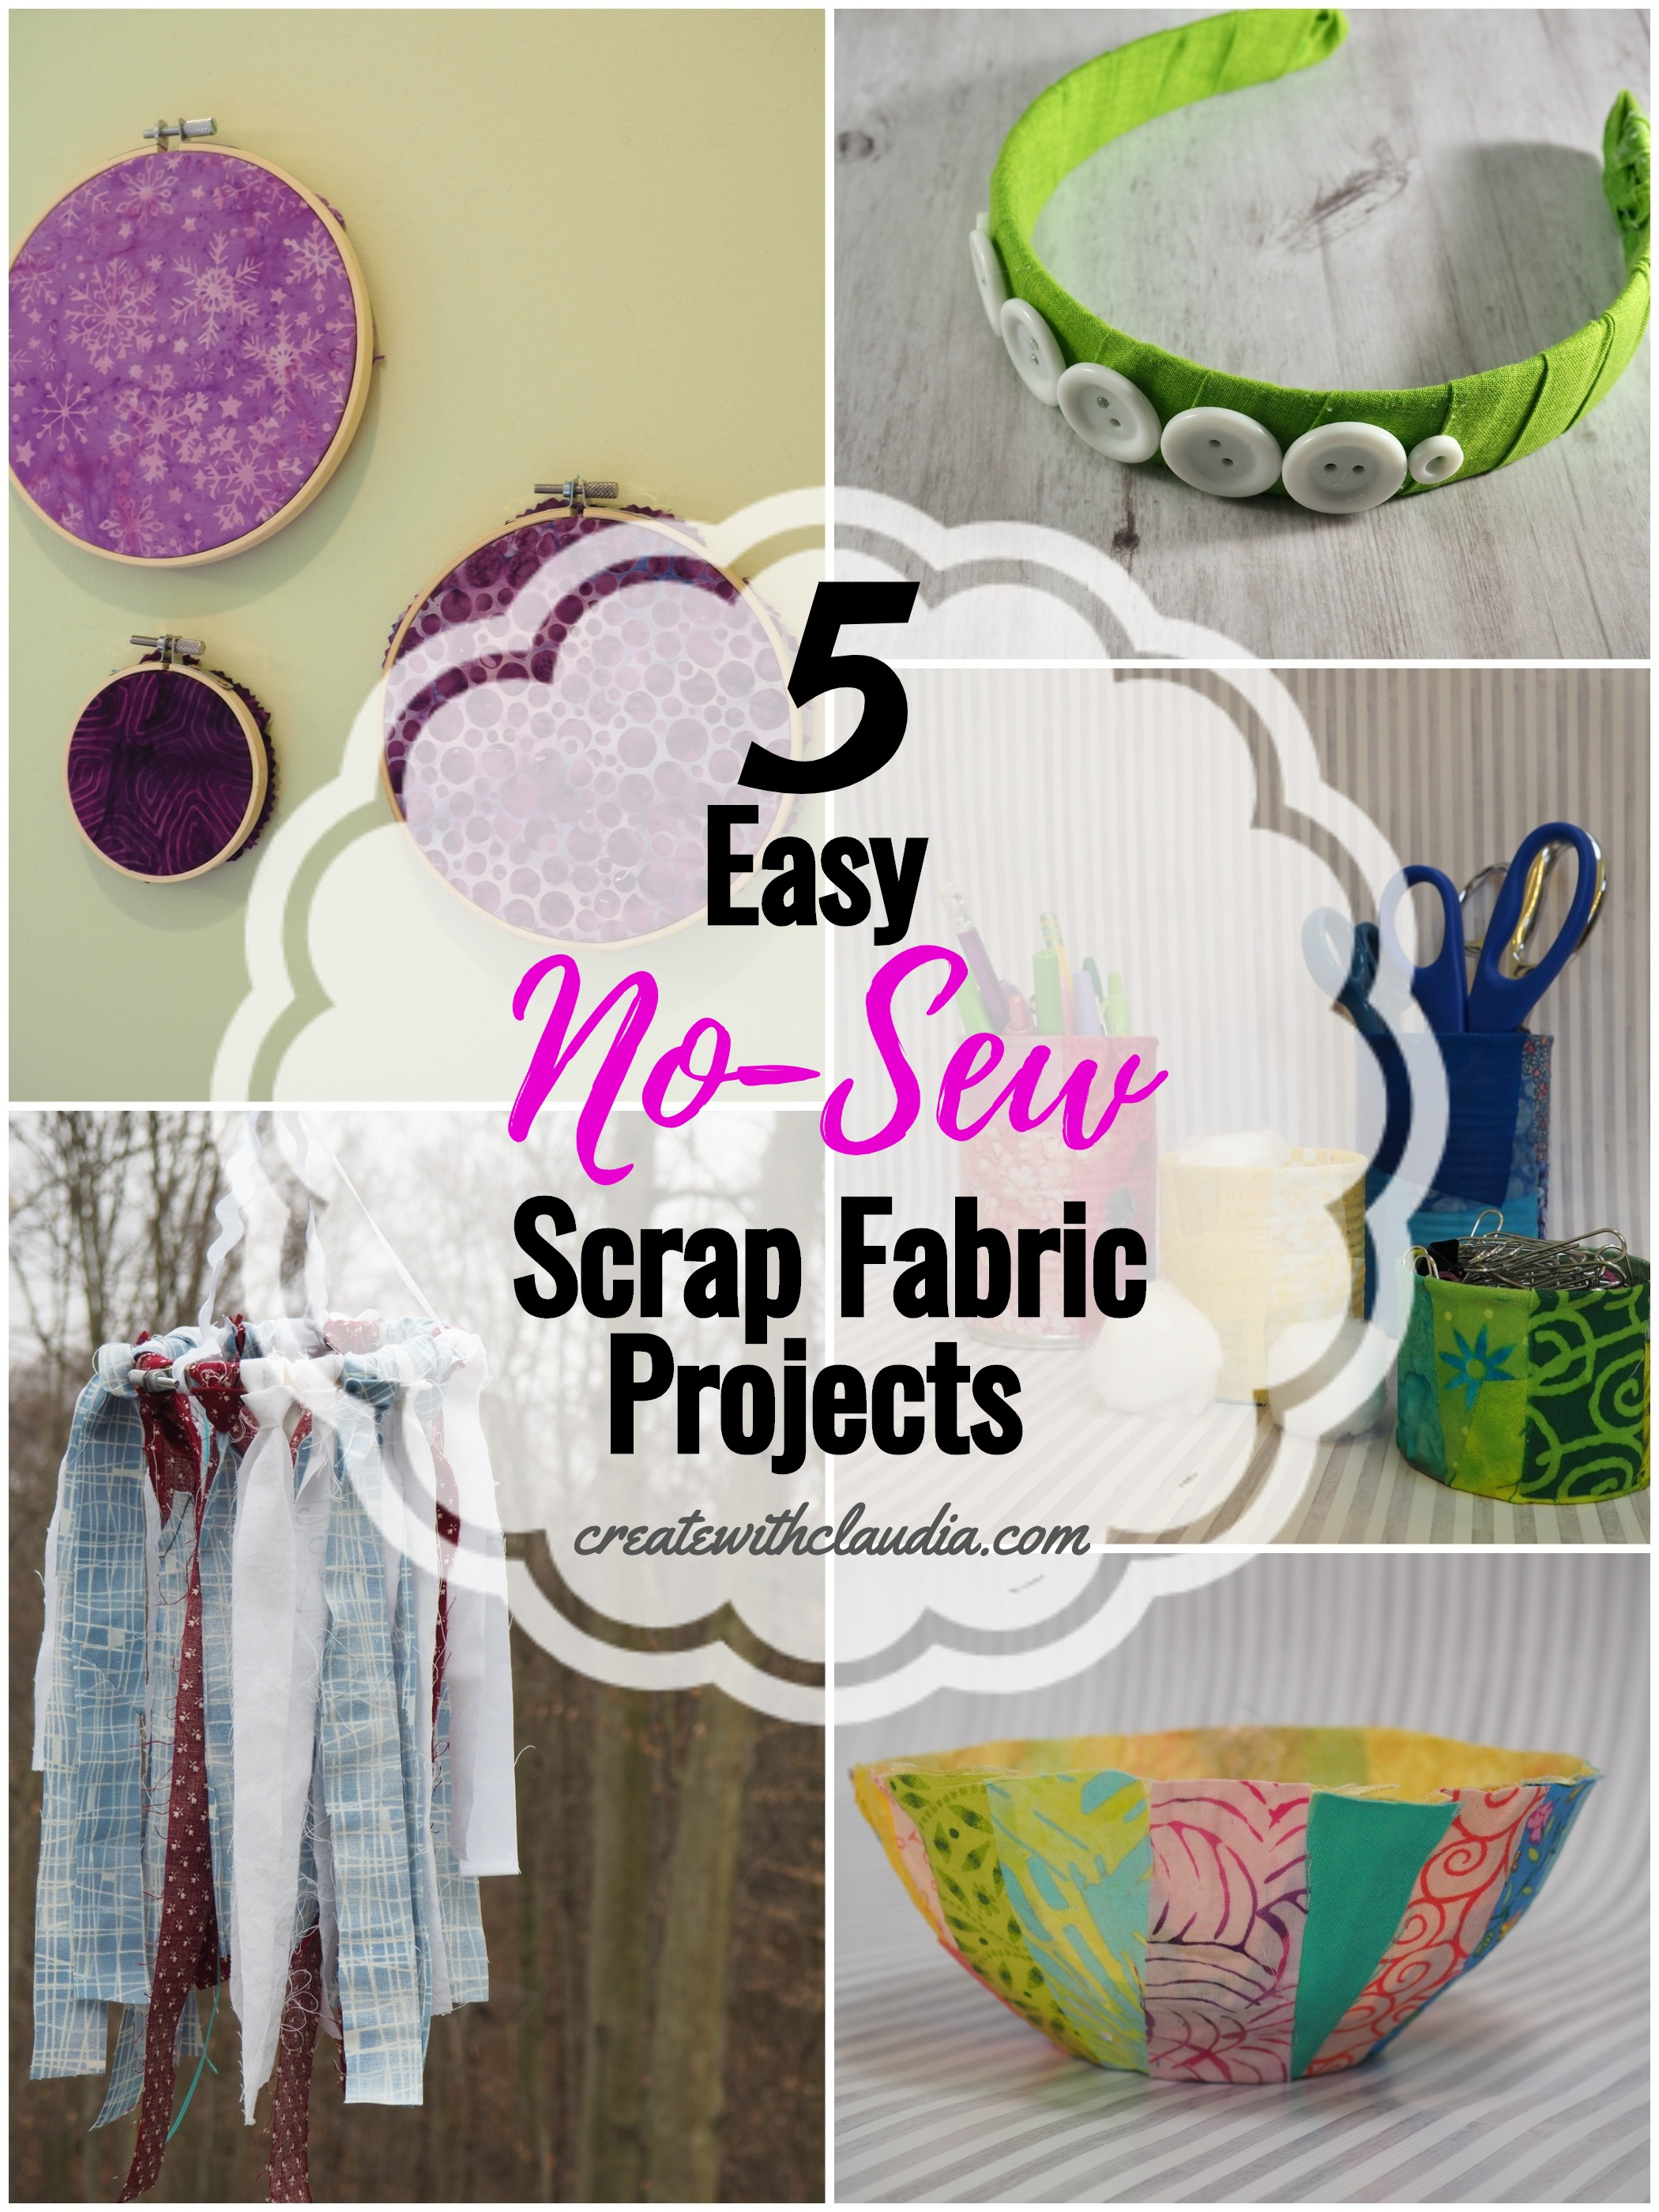 Easy No Sew Scrap Fabric Projects Create With Claudia